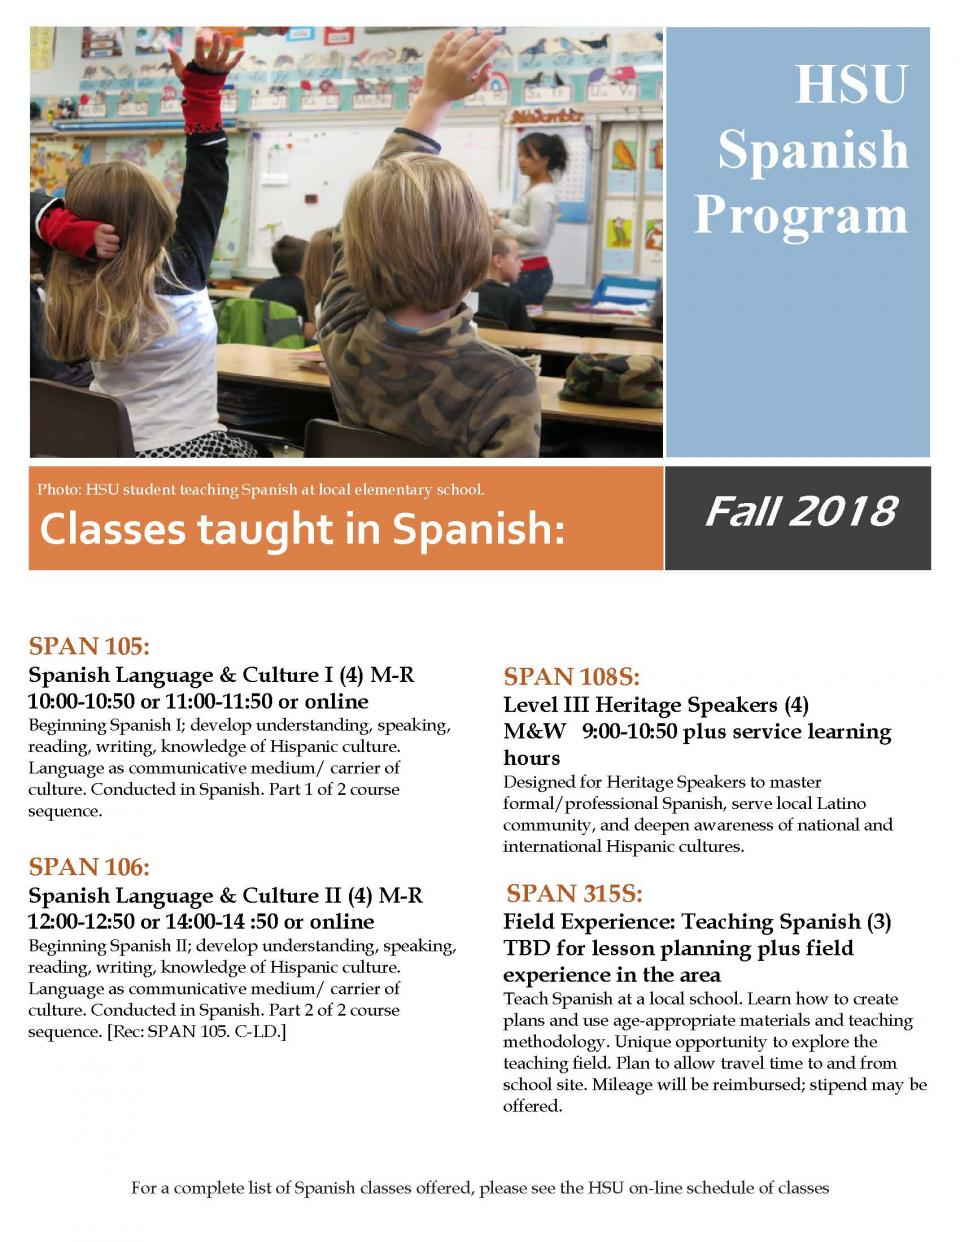 Spanish classes flyer Fall 2018